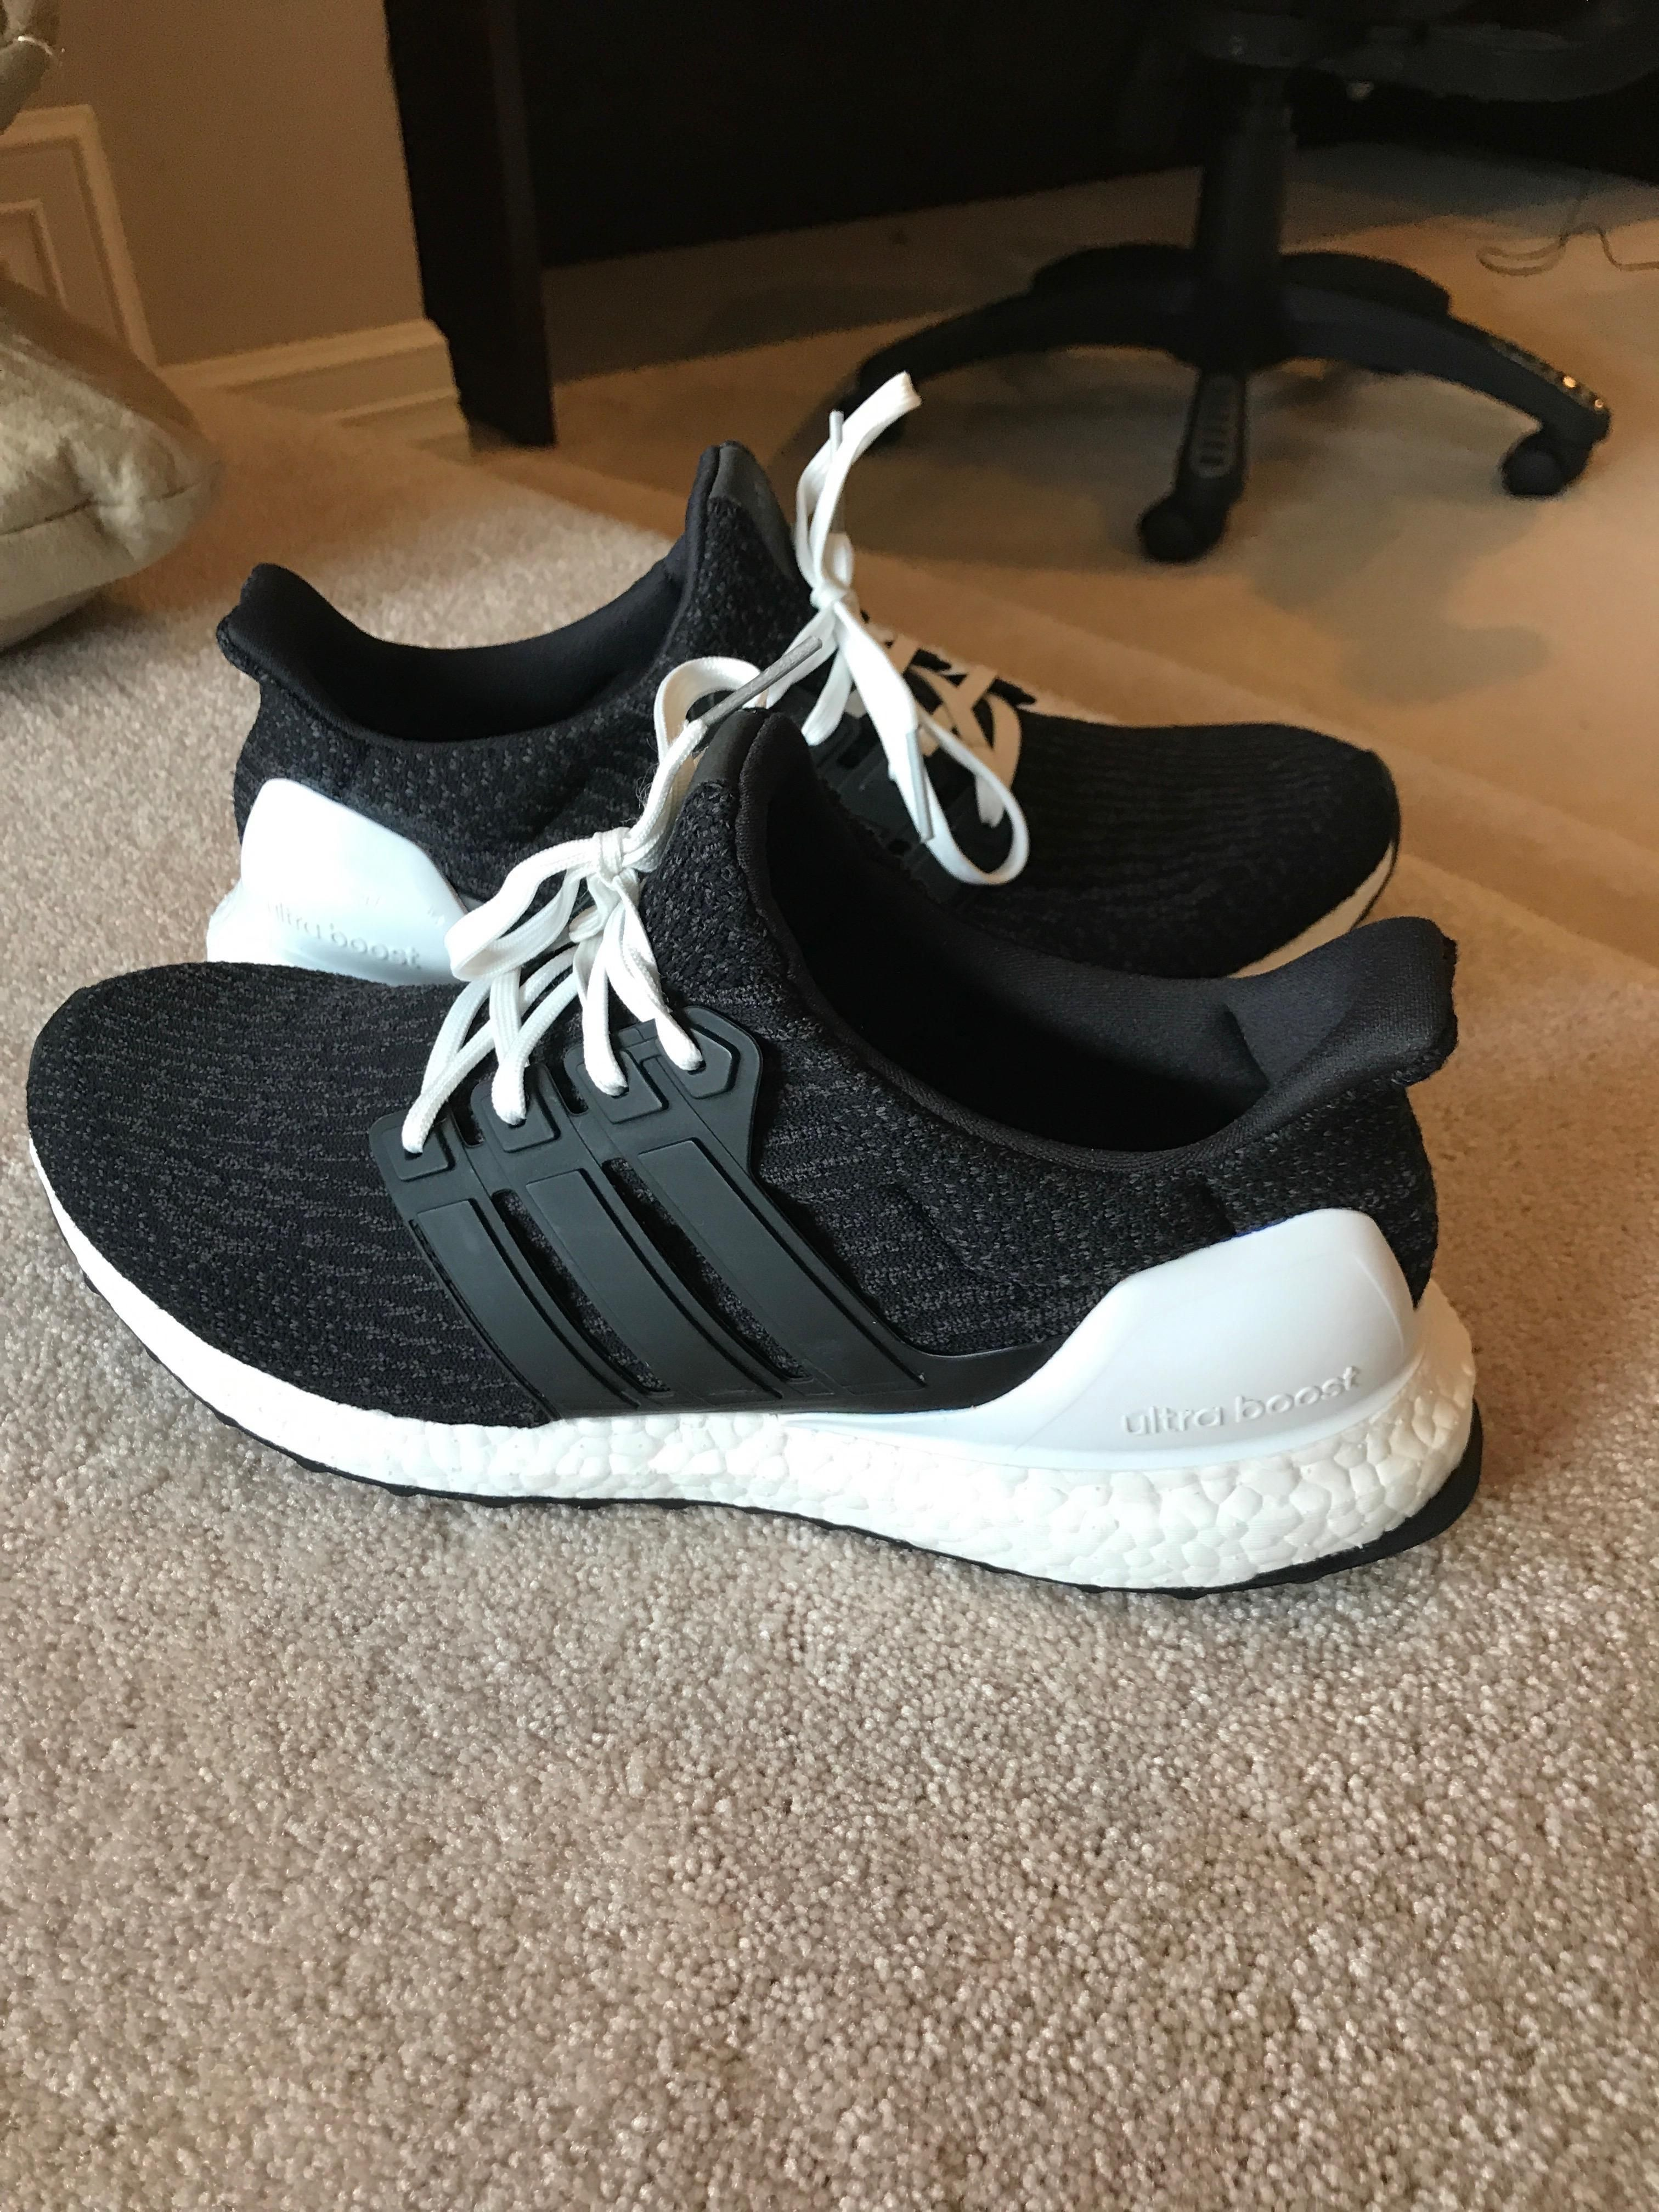 Custom Ultra boost Pride with white laces. Dope?